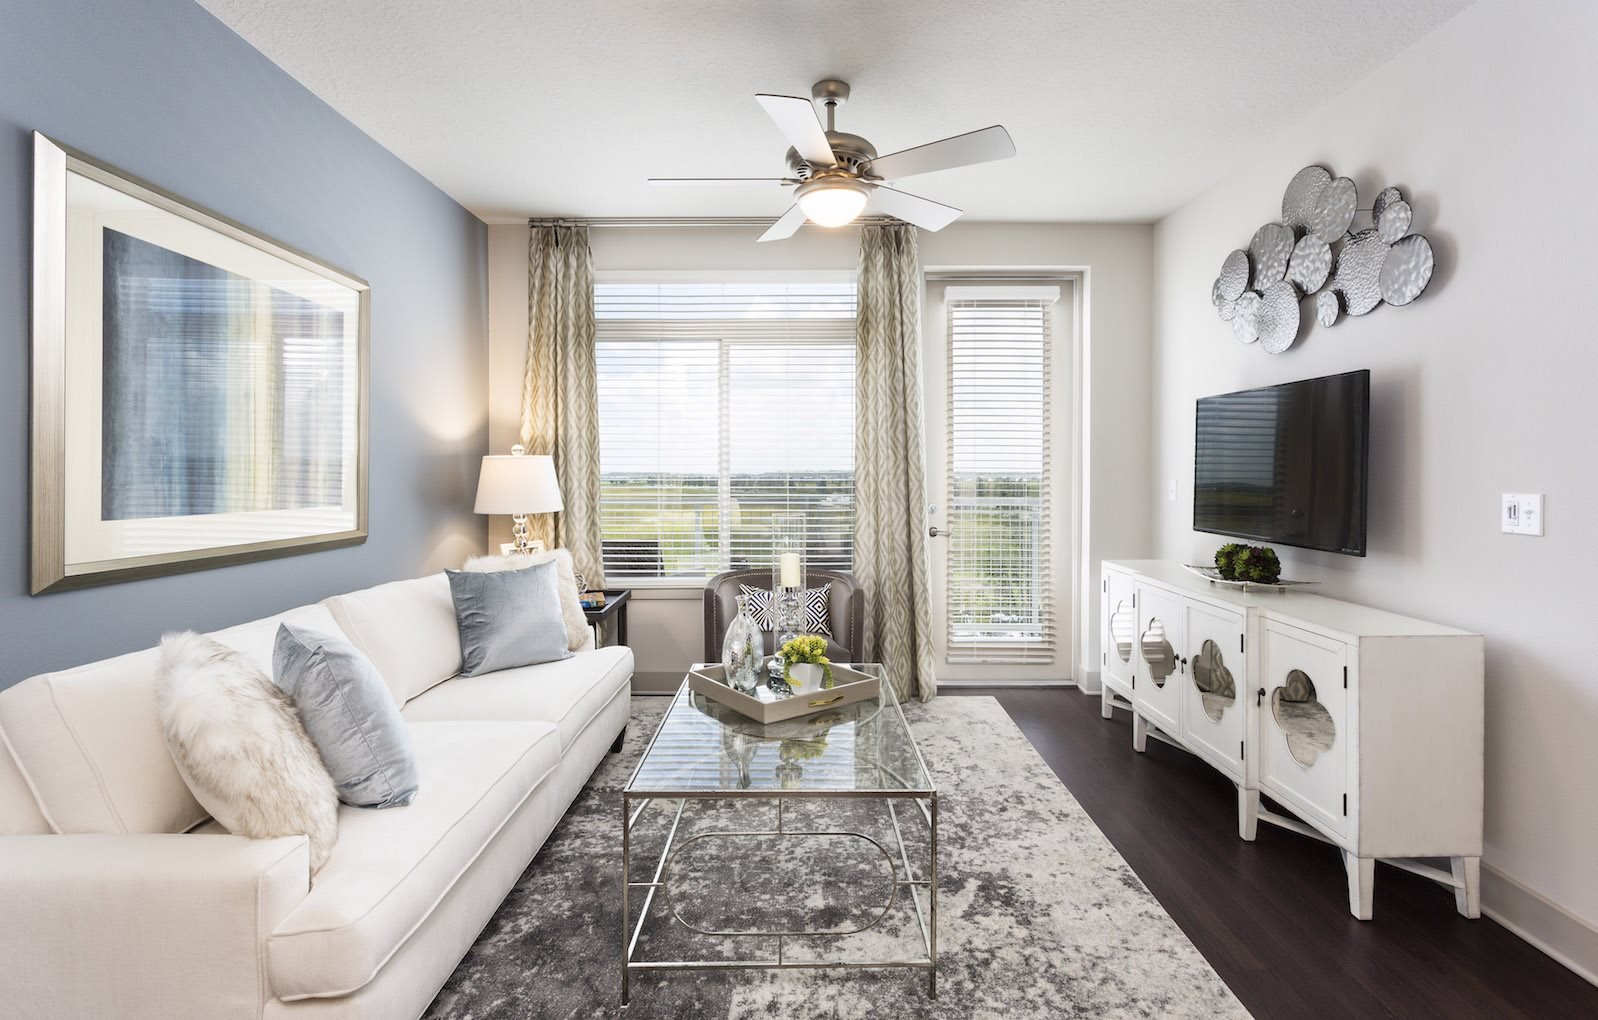 Landon house apartments in orlando fl - 3 bedroom apartments in cambridge ma ...